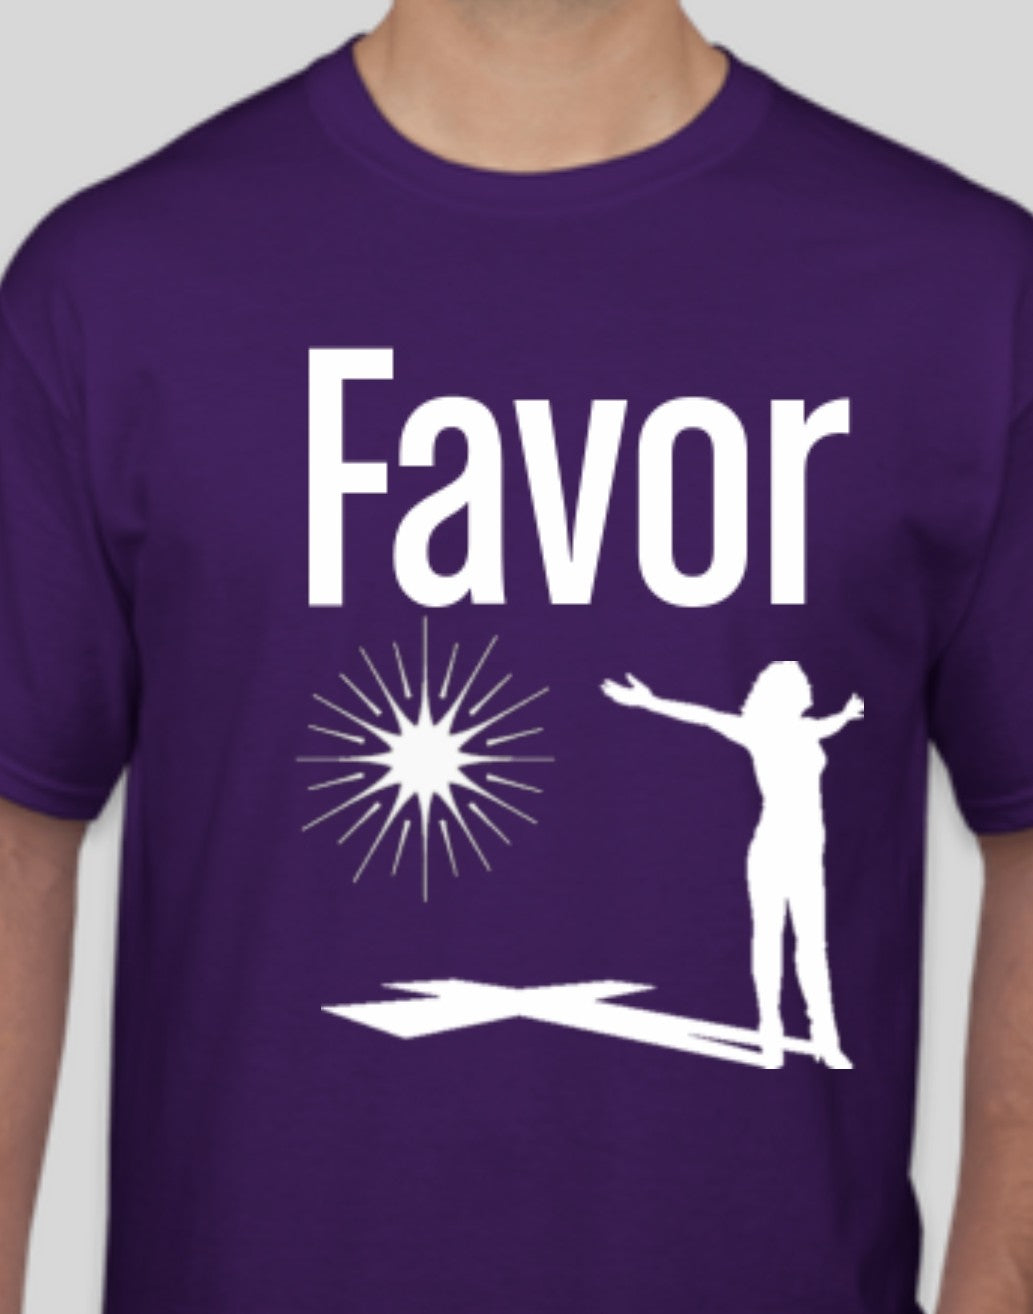 Women's Favor Purple T-shirt